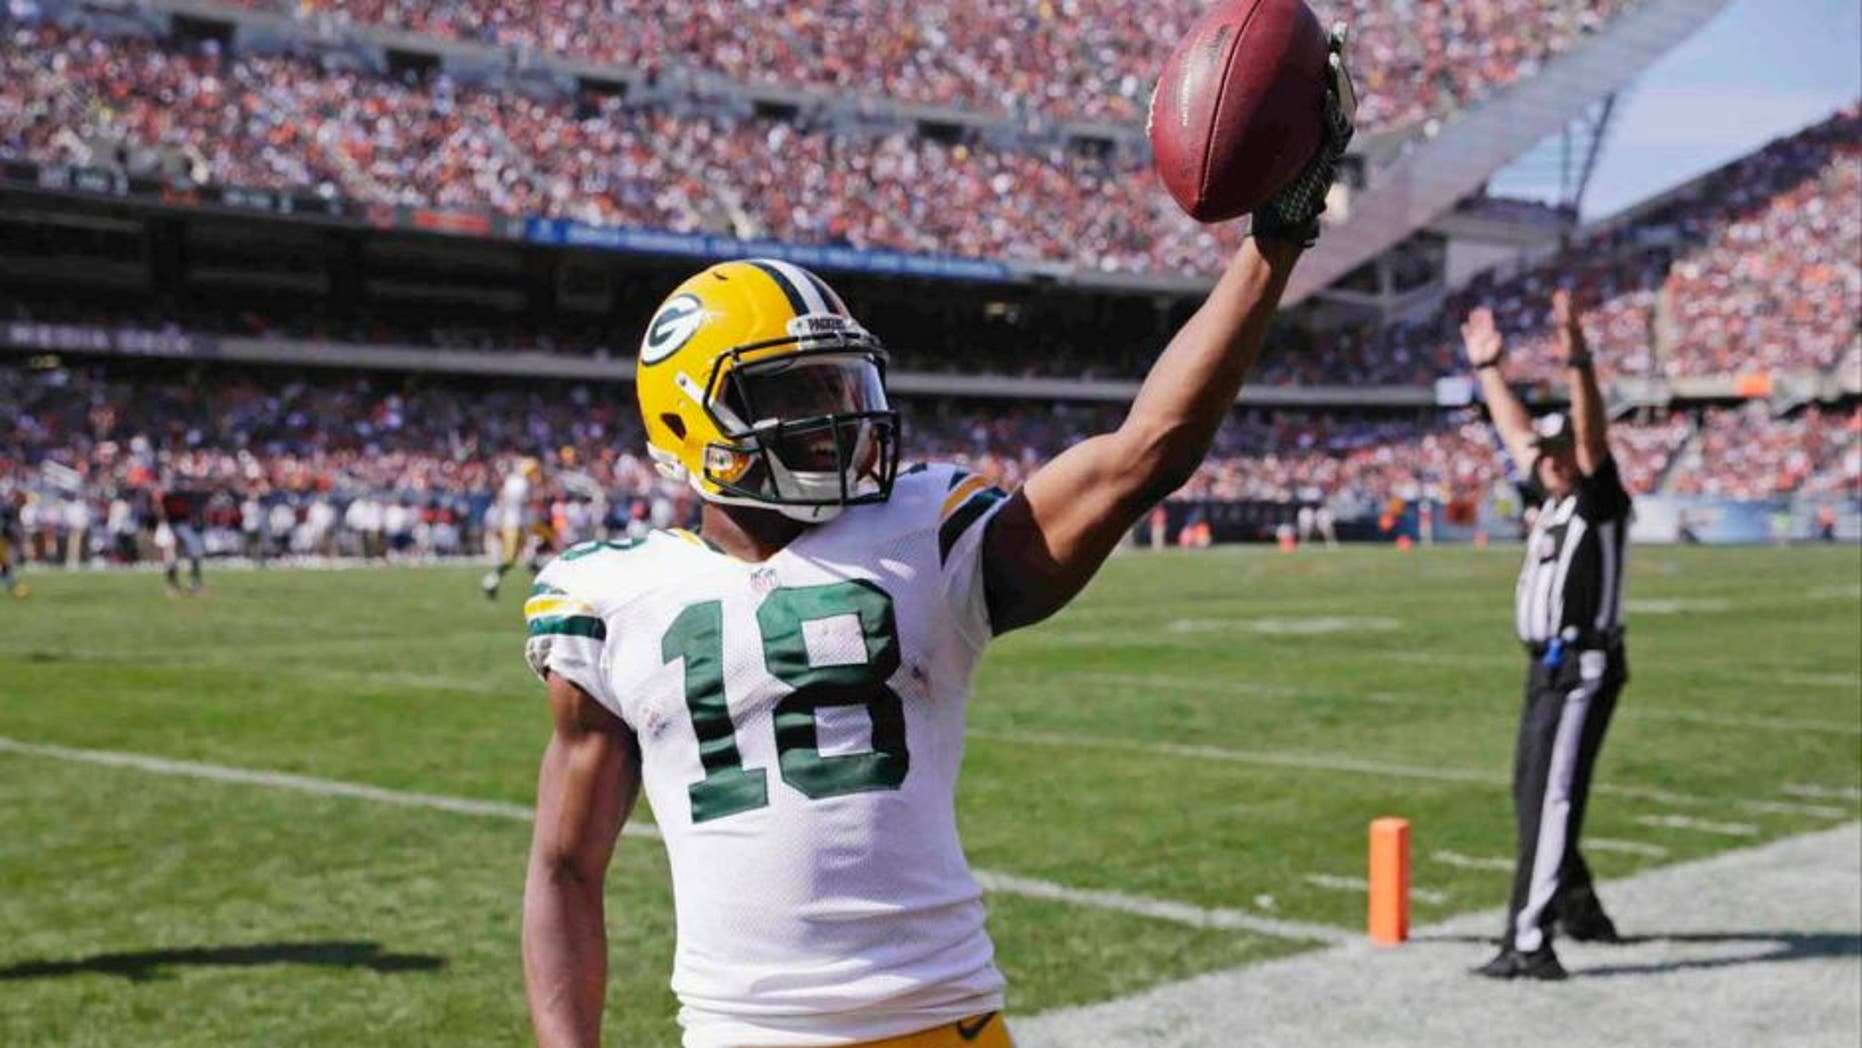 Green Bay Packers wide receiver Randall Cobb celebrates a touchdown in the end zone in the second half against the Chicago Bears.